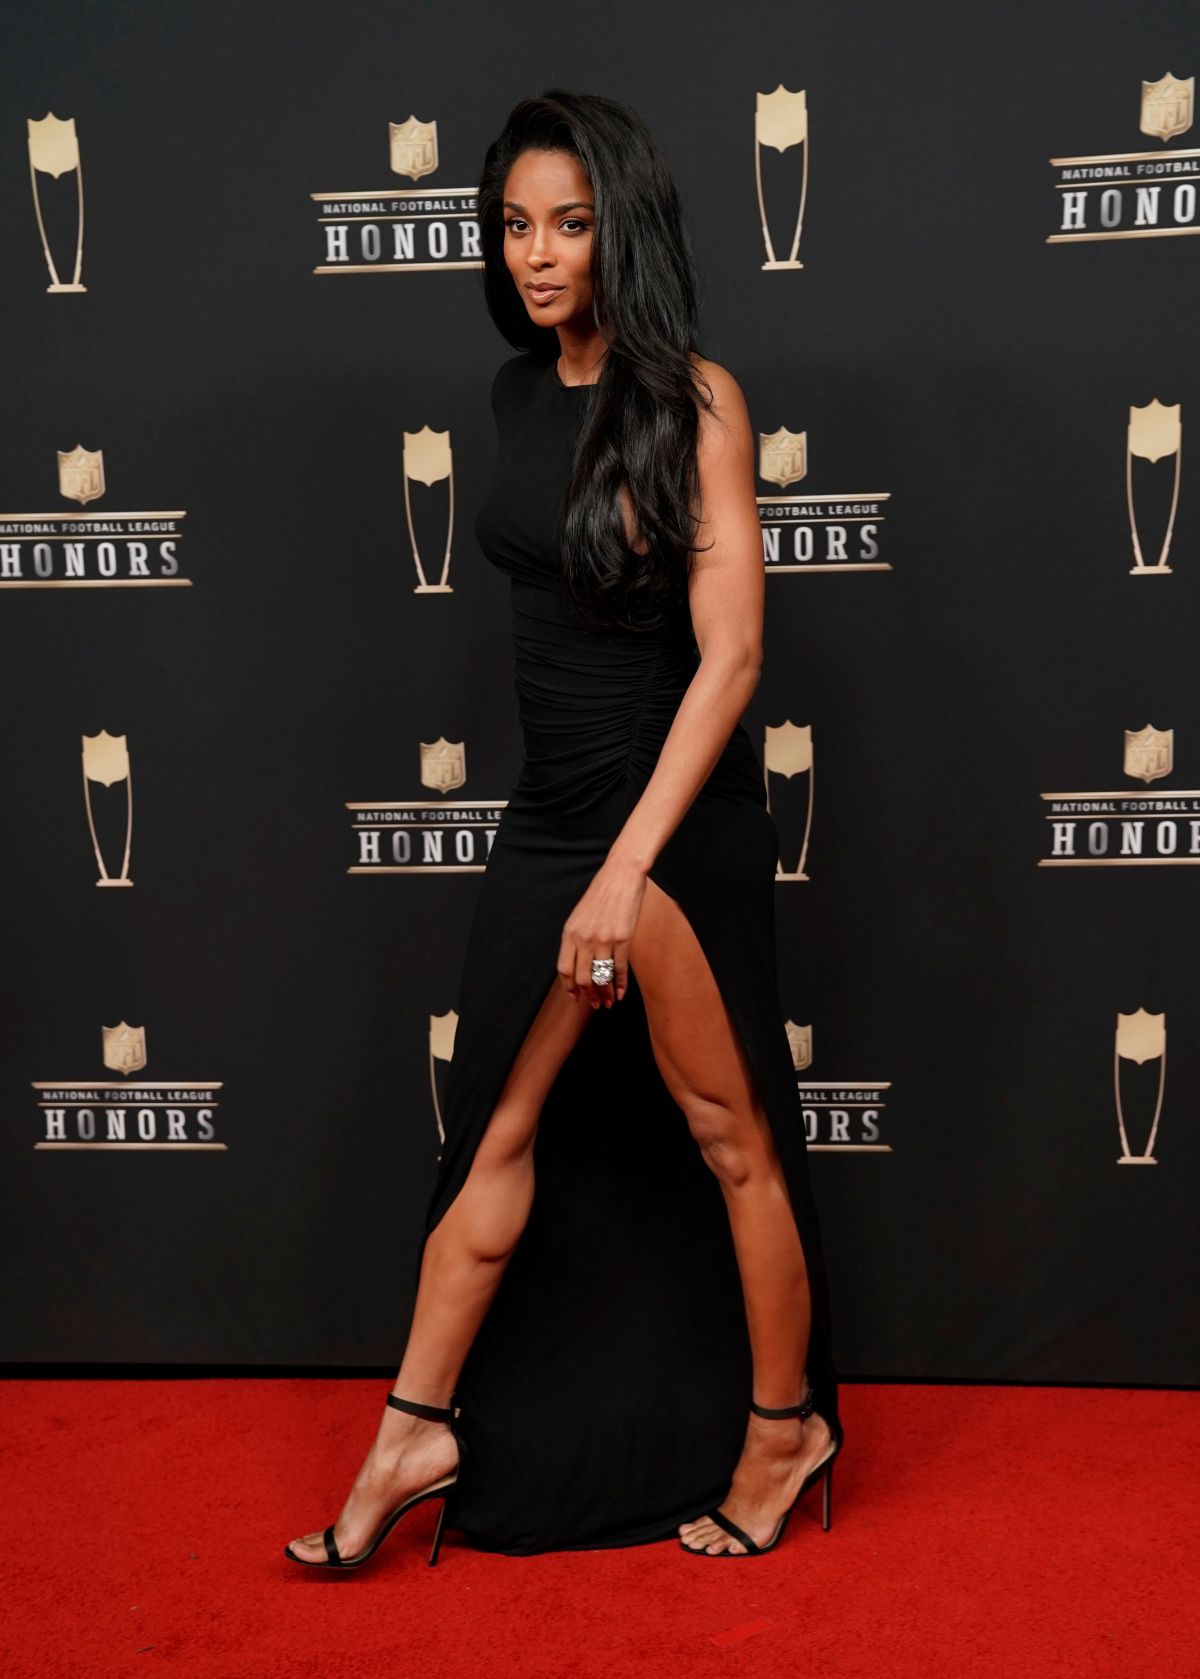 Ciara In Instyle Magazine April 2019 Issue: CIARA At NFL Honors In Atlanta 02/02/2019